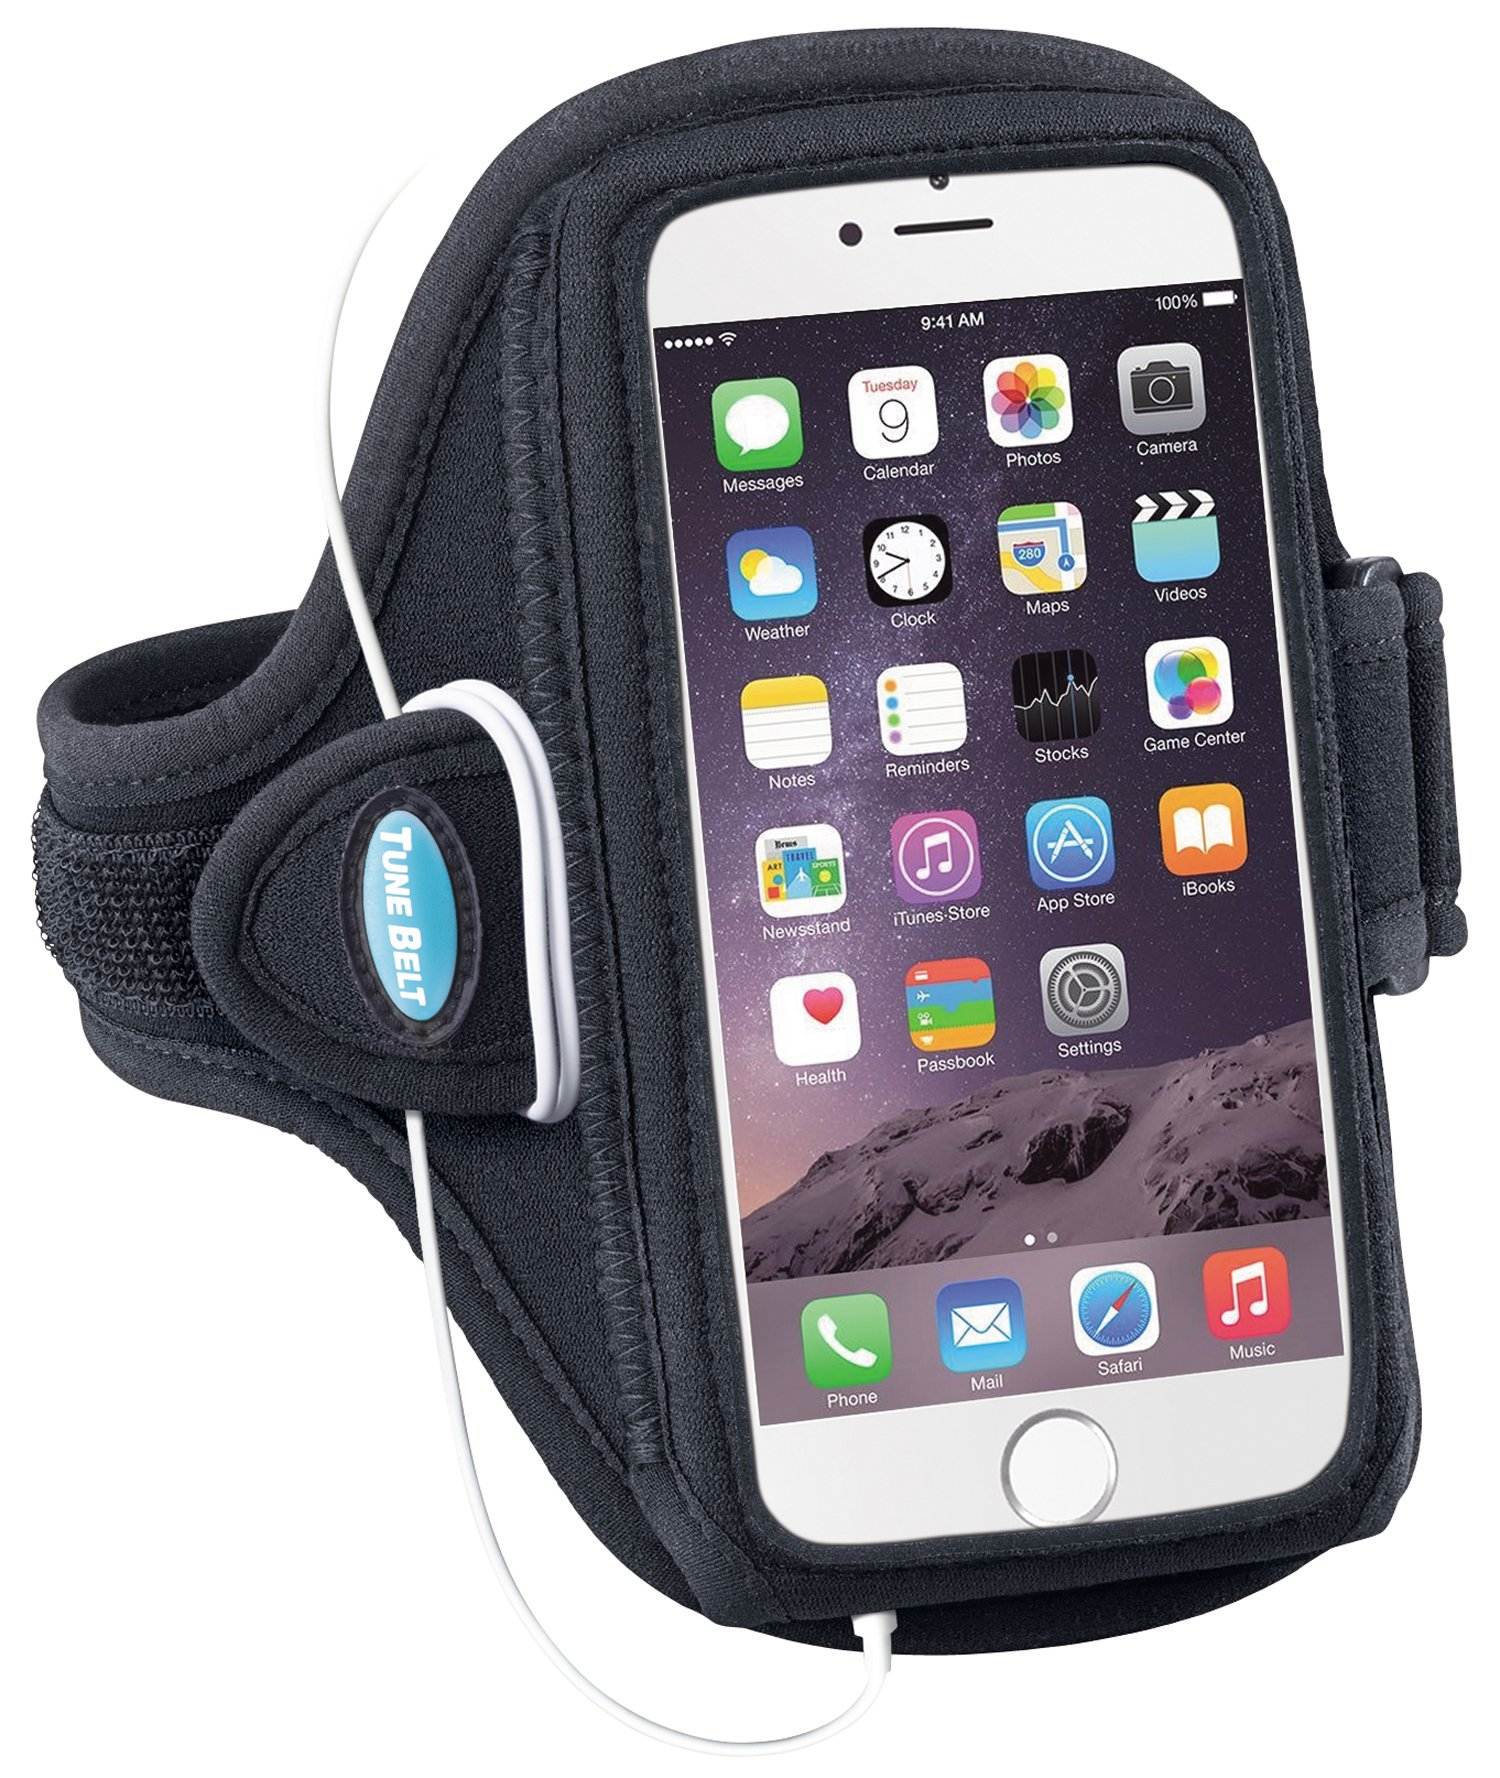 Armband for iPhone 6 6s 7 8 Plus, Samsung Galaxy Note 8 and S8 Plus - for Running, Jogging & Working Out - Water Resistant - for Women & Men [Black] See Fit Details by Tune Belt (Image #2)